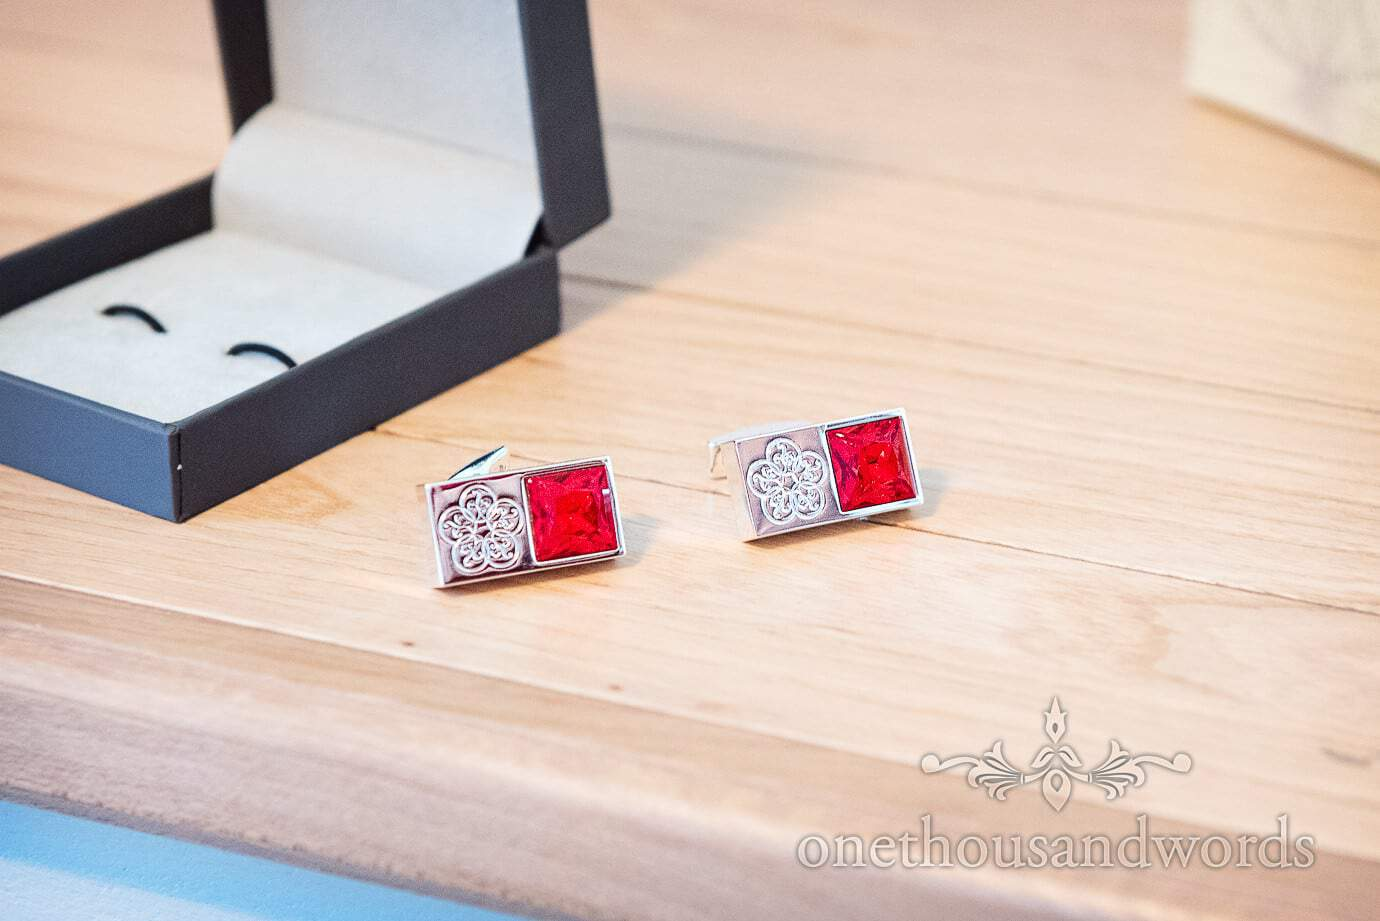 Engraved silver wedding cufflinks with red gems stones on wooden shelf